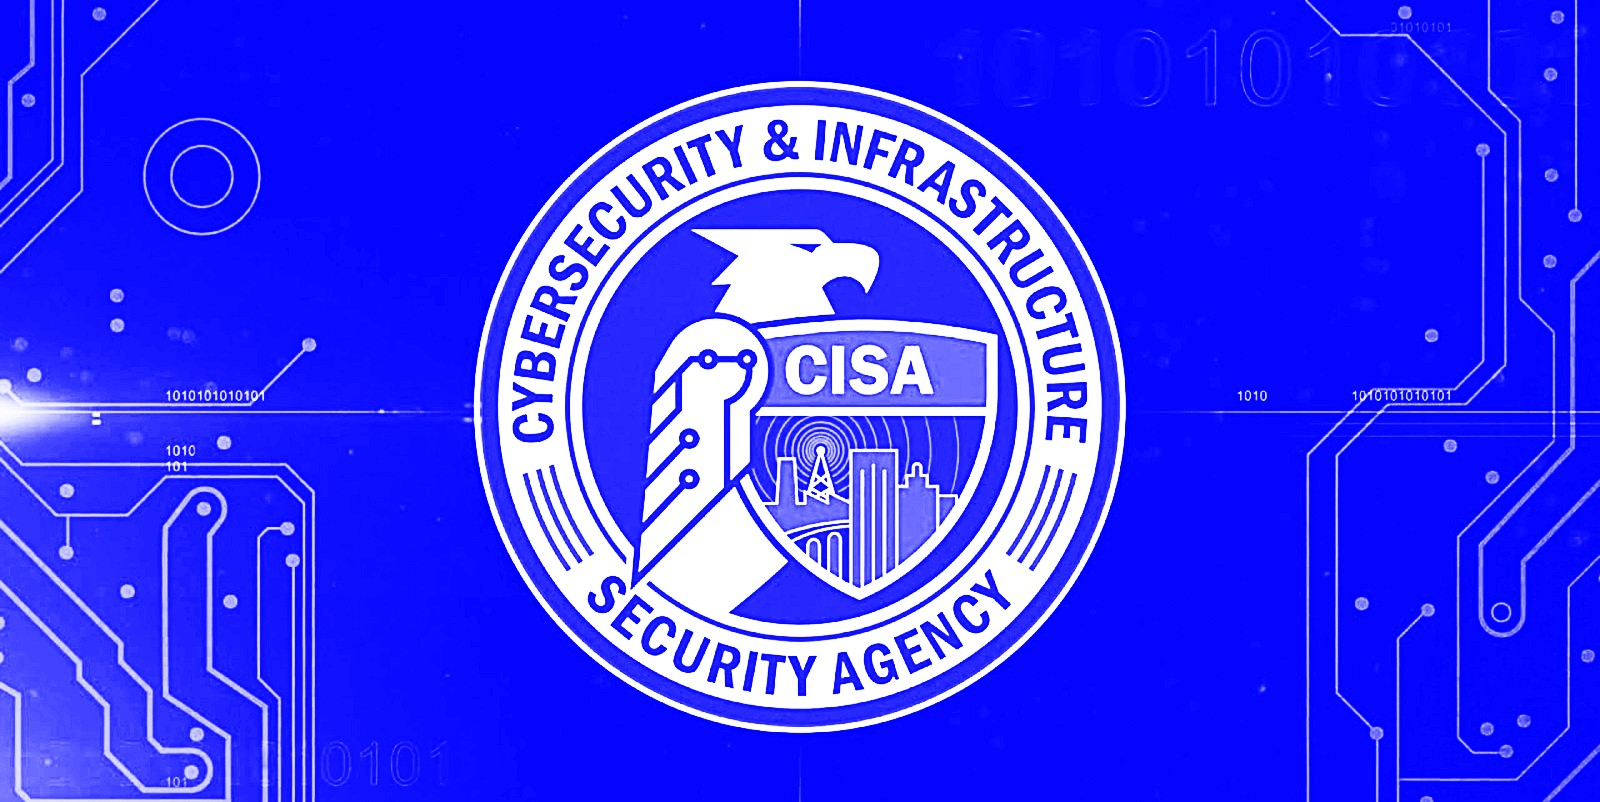 CISA: Don't use single-factor authentication on Internet-exposed systems